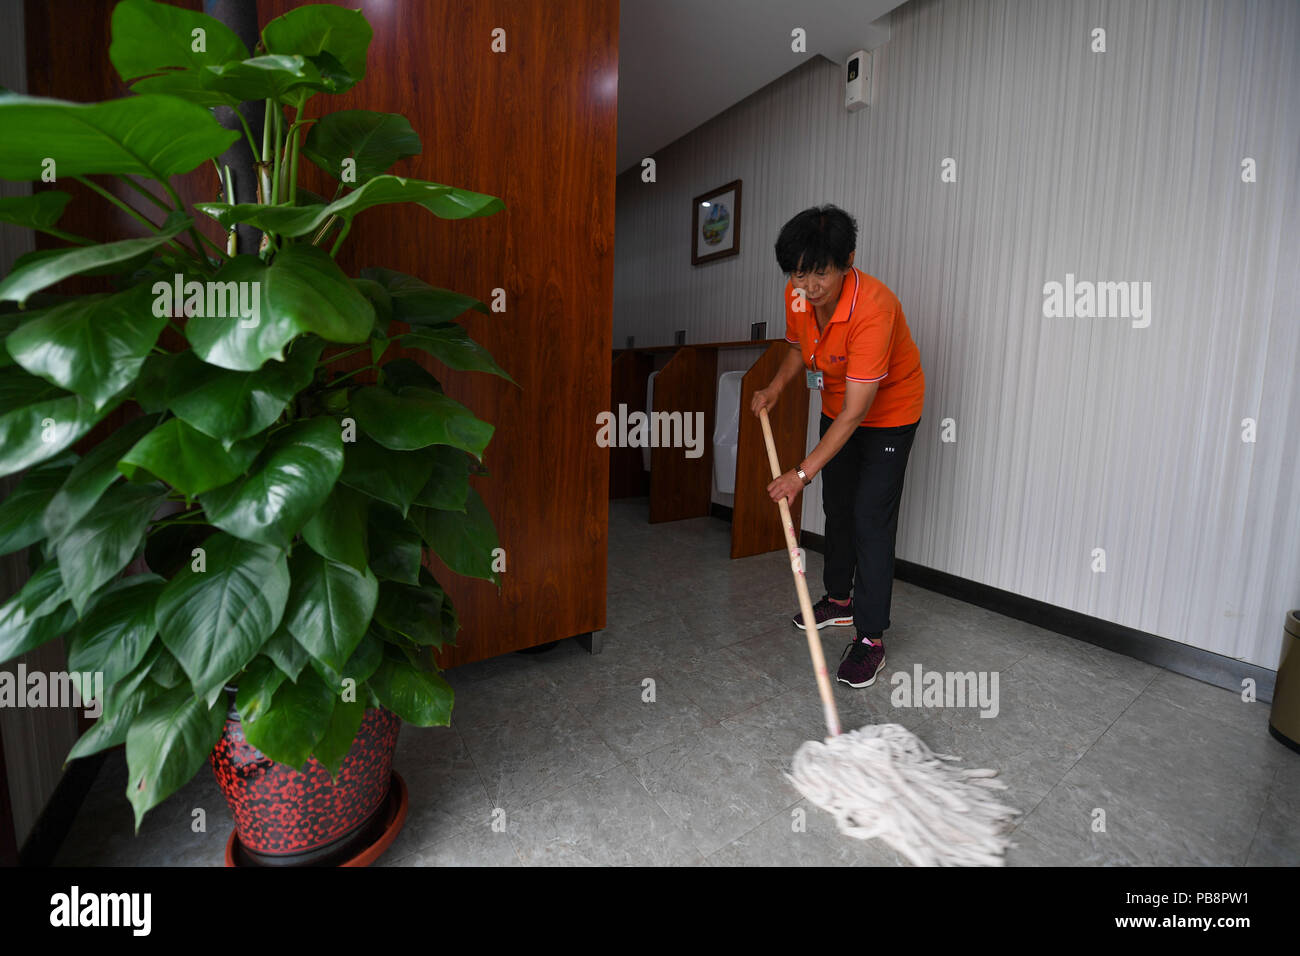 180727) -- HOHHOT, July 27, 2018 (Xinhua) -- A cleaner works at an ...